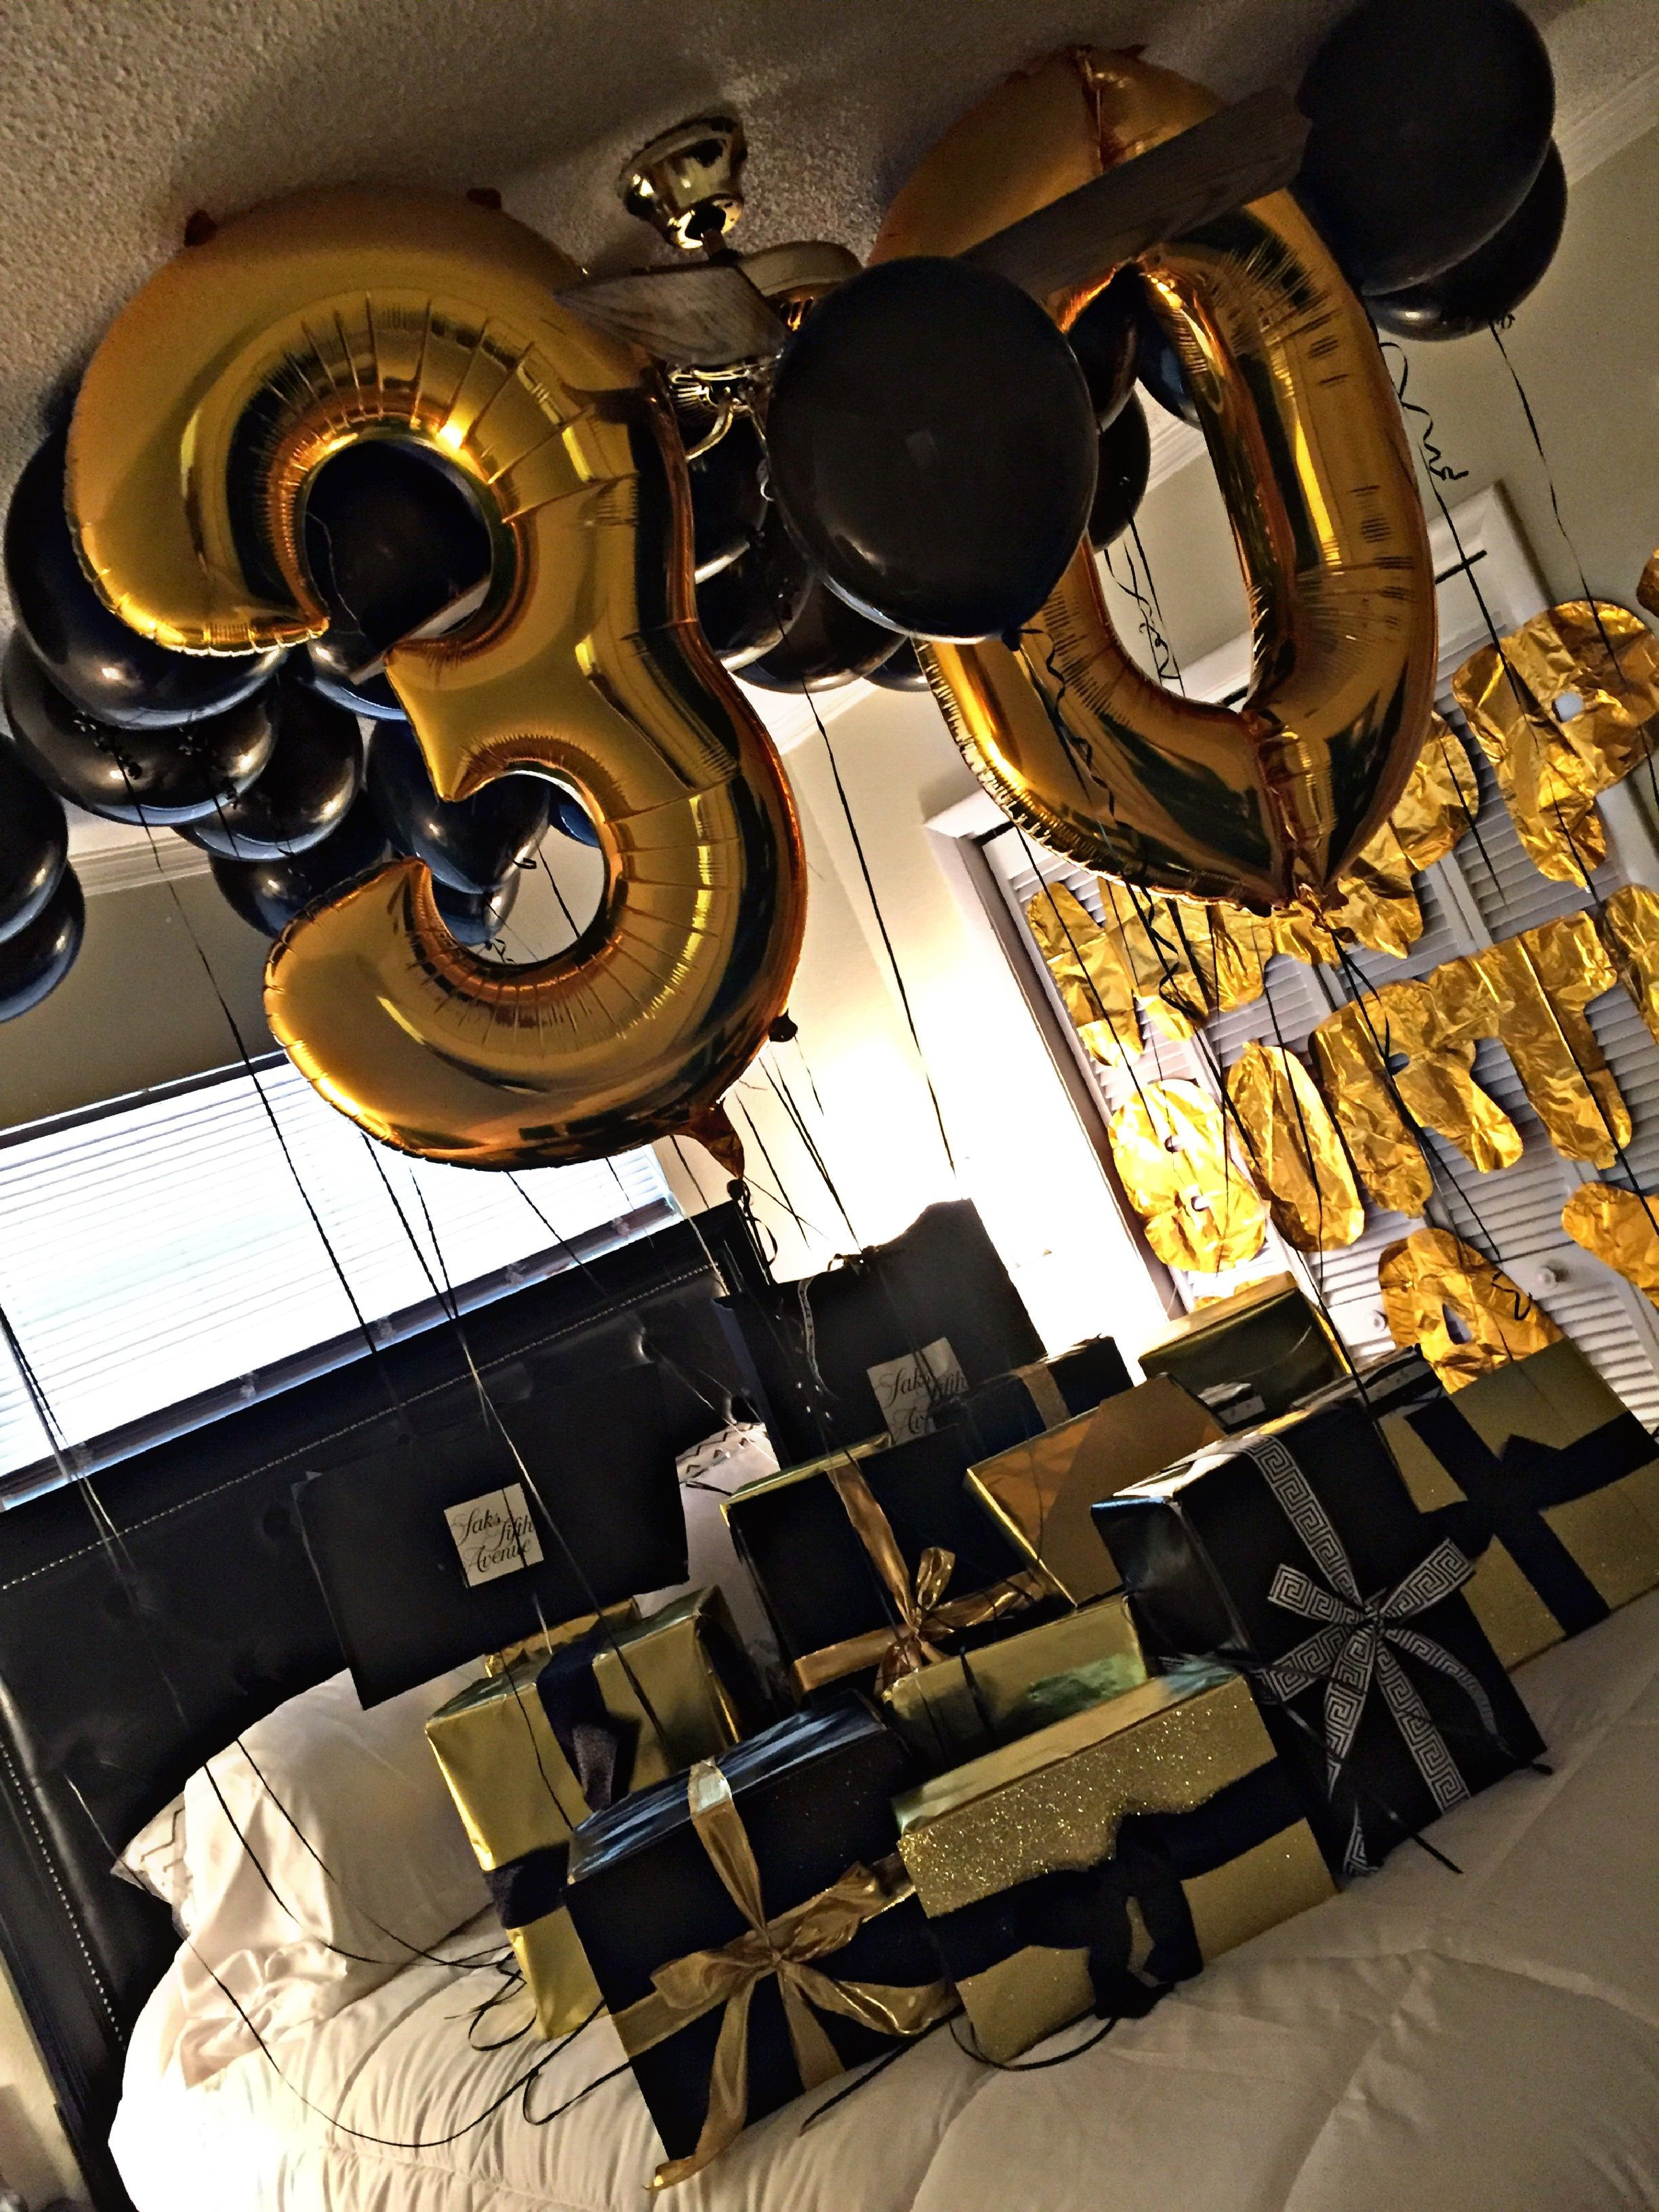 Best ideas about Birthday Decorations For Him . Save or Pin 30 Gifts for my husband 30th birthday Now.